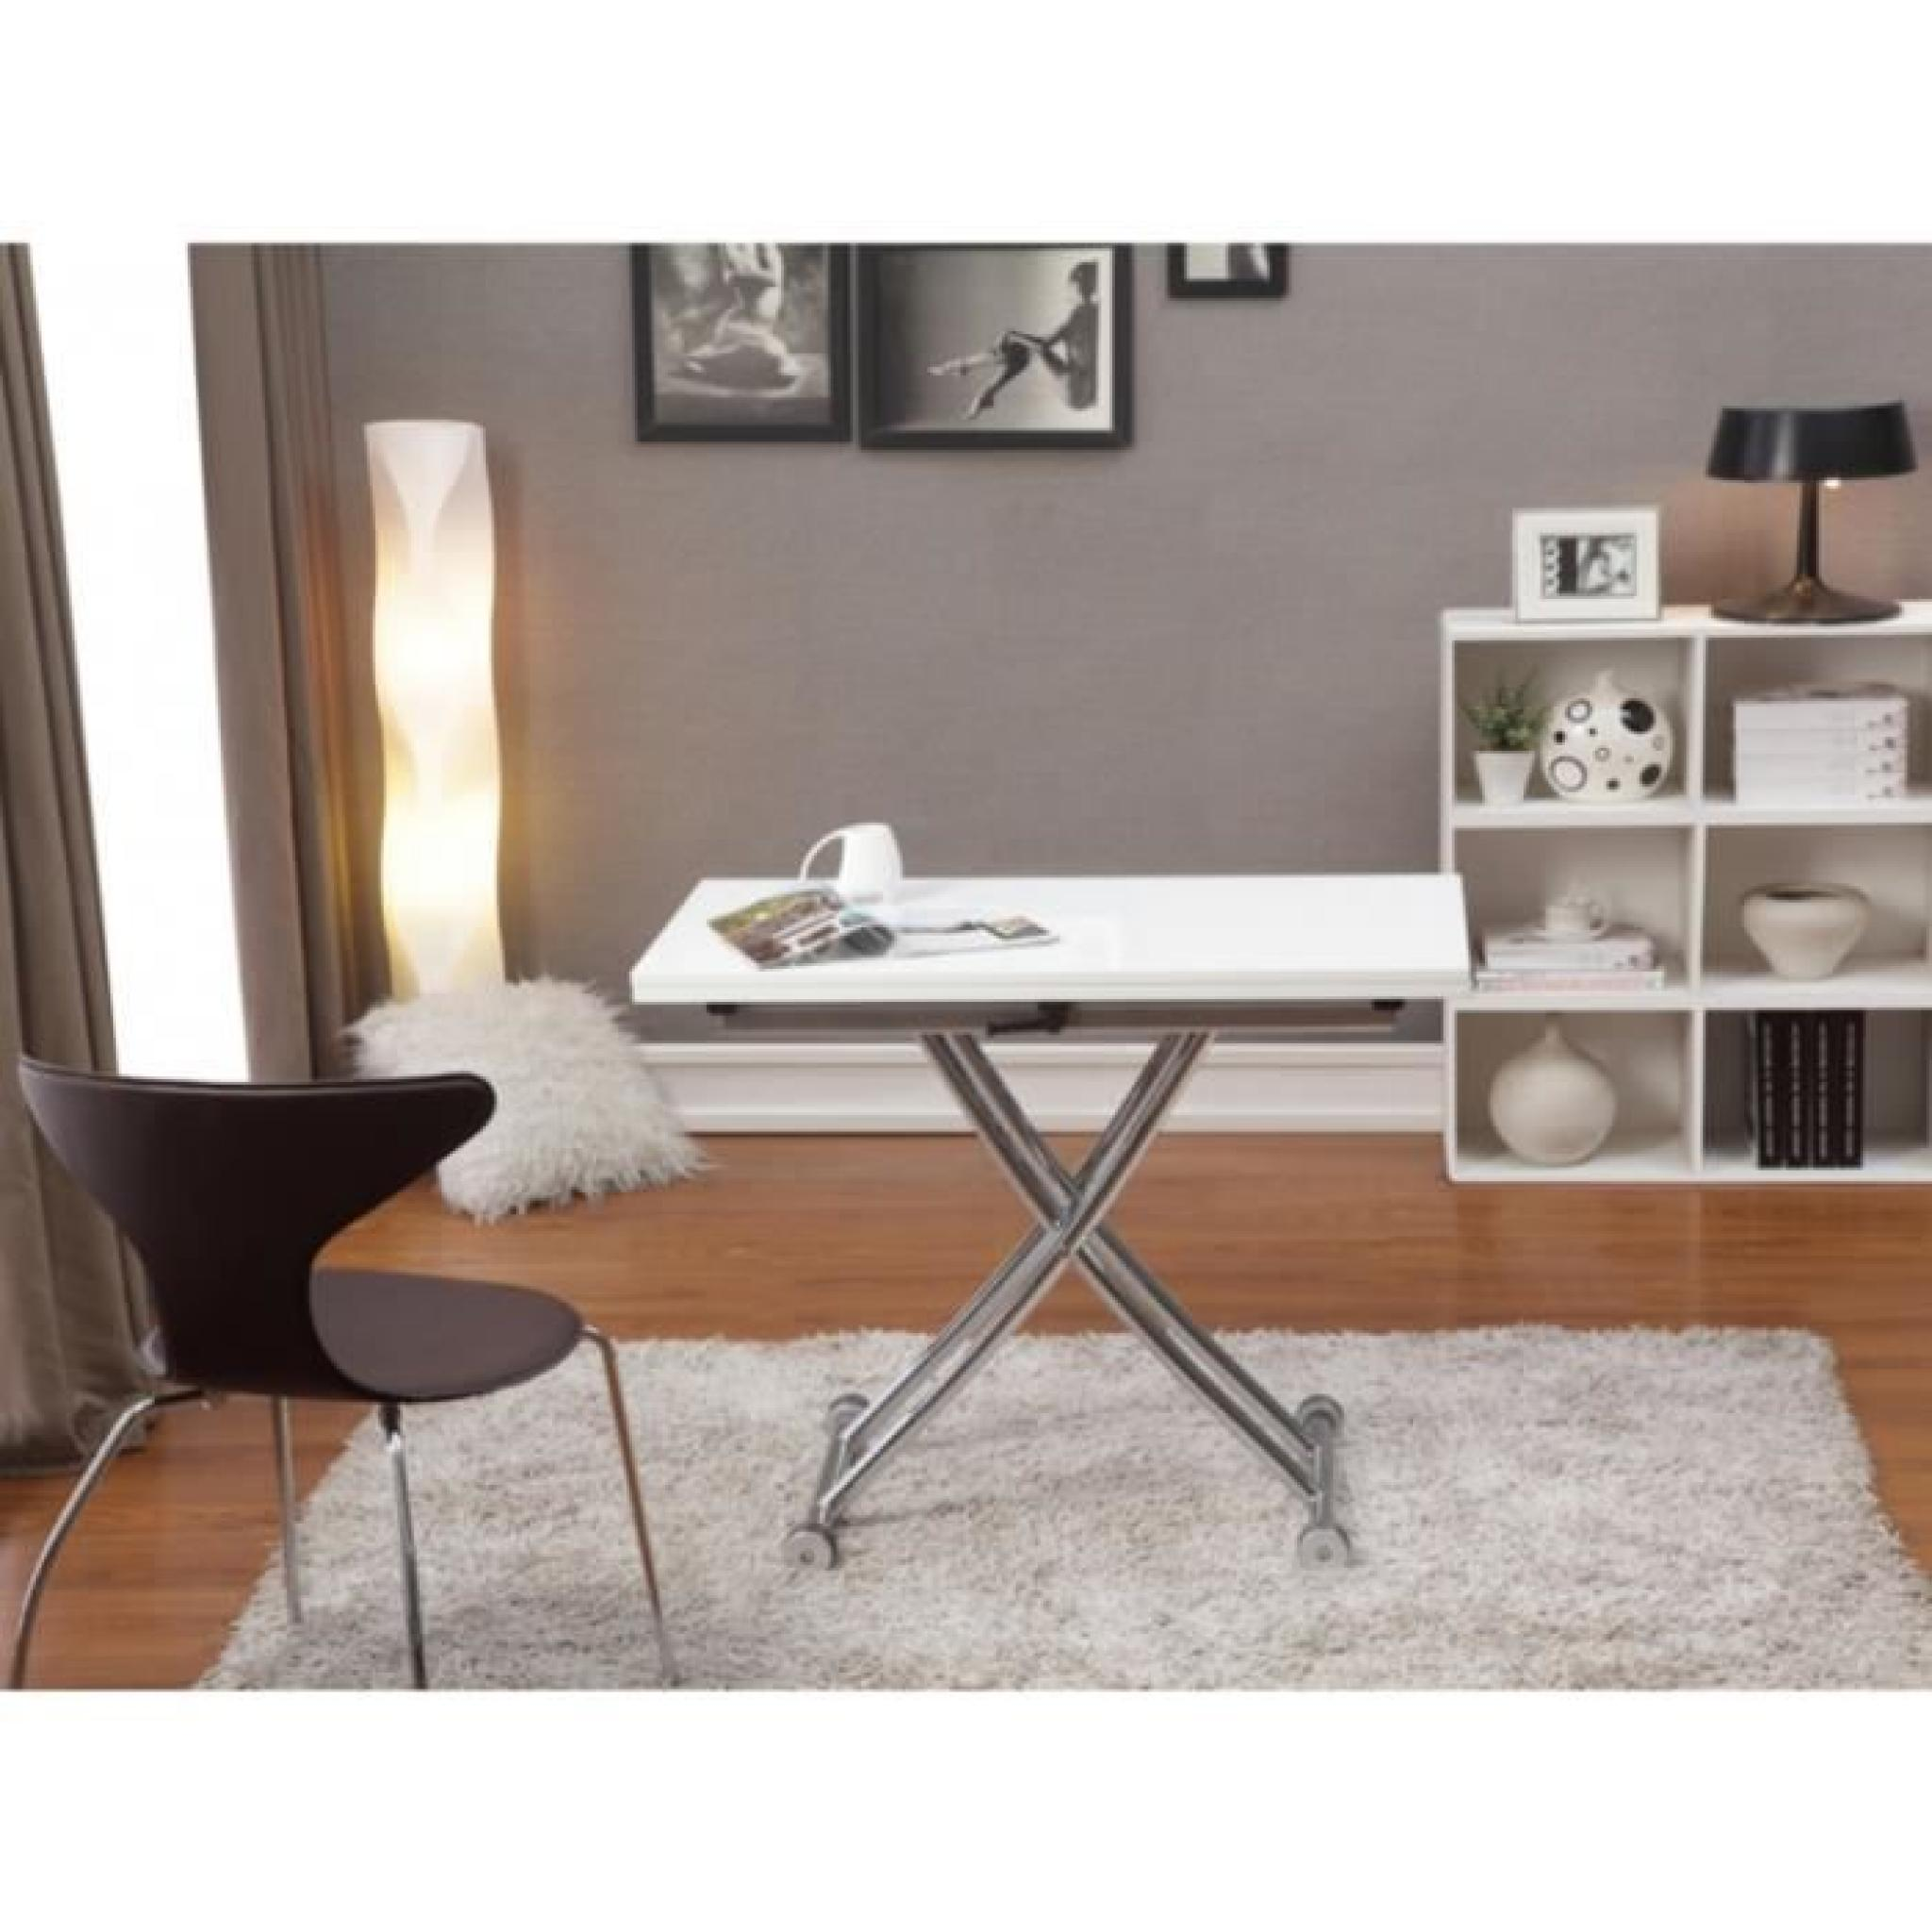 Table extensible up u down clever couverts c pas cher with - Couverts de table manche couleur ...